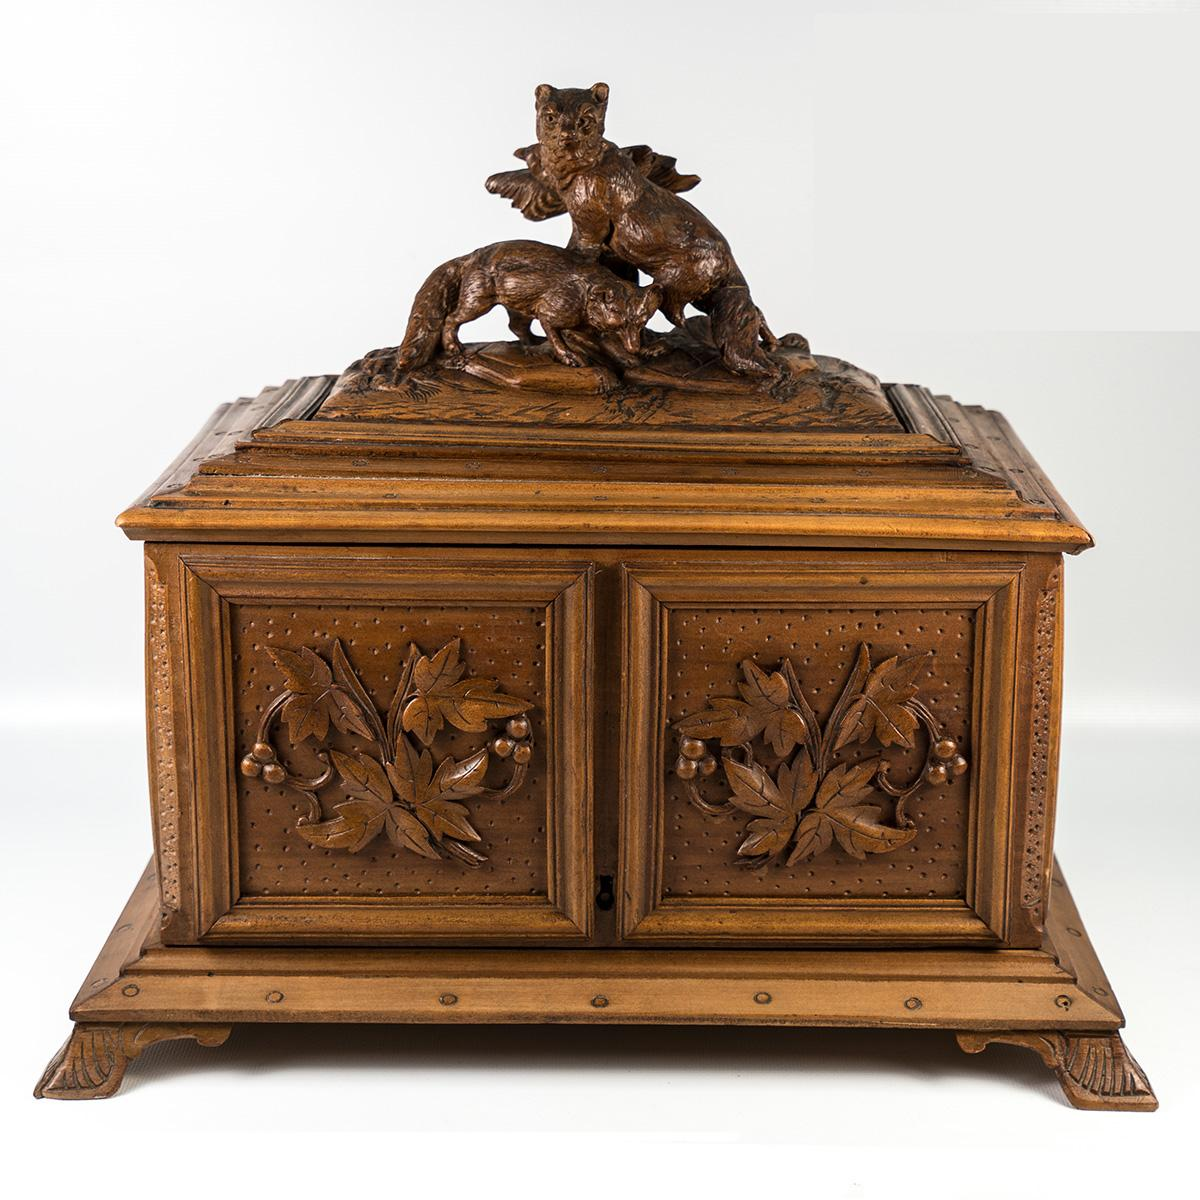 All items and photos are the express property of Antiques & Uncommon  Treasure. No reproduction without prior written consent. - Antique Black Forest Desk Cigar Cabinet, Chest, Box, Presentation